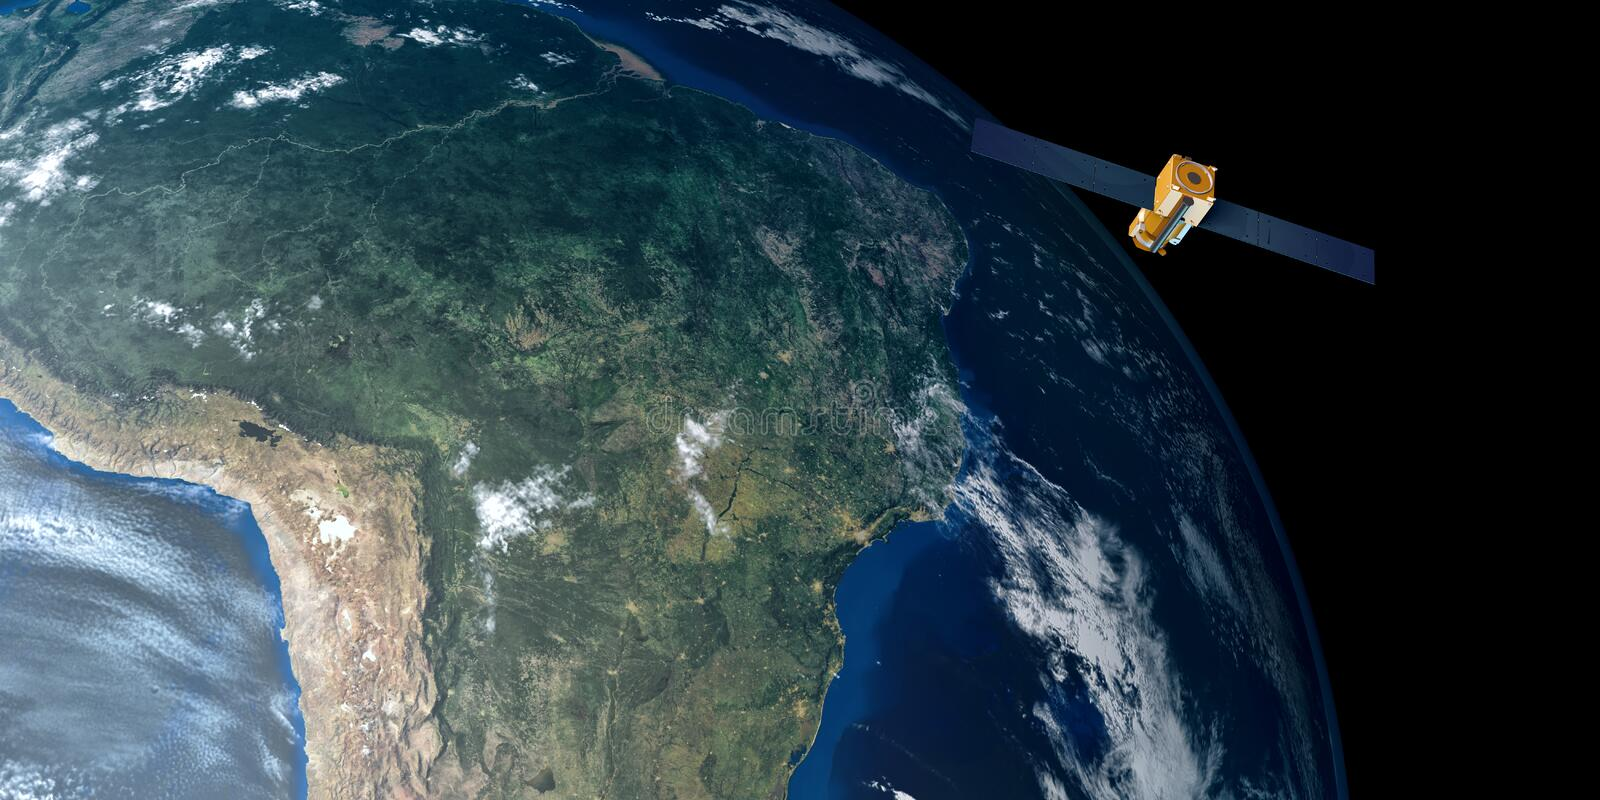 Extremely detailed and realistic high resolution 3D image of a satellite orbiting Earth. Shot from space royalty free stock photo